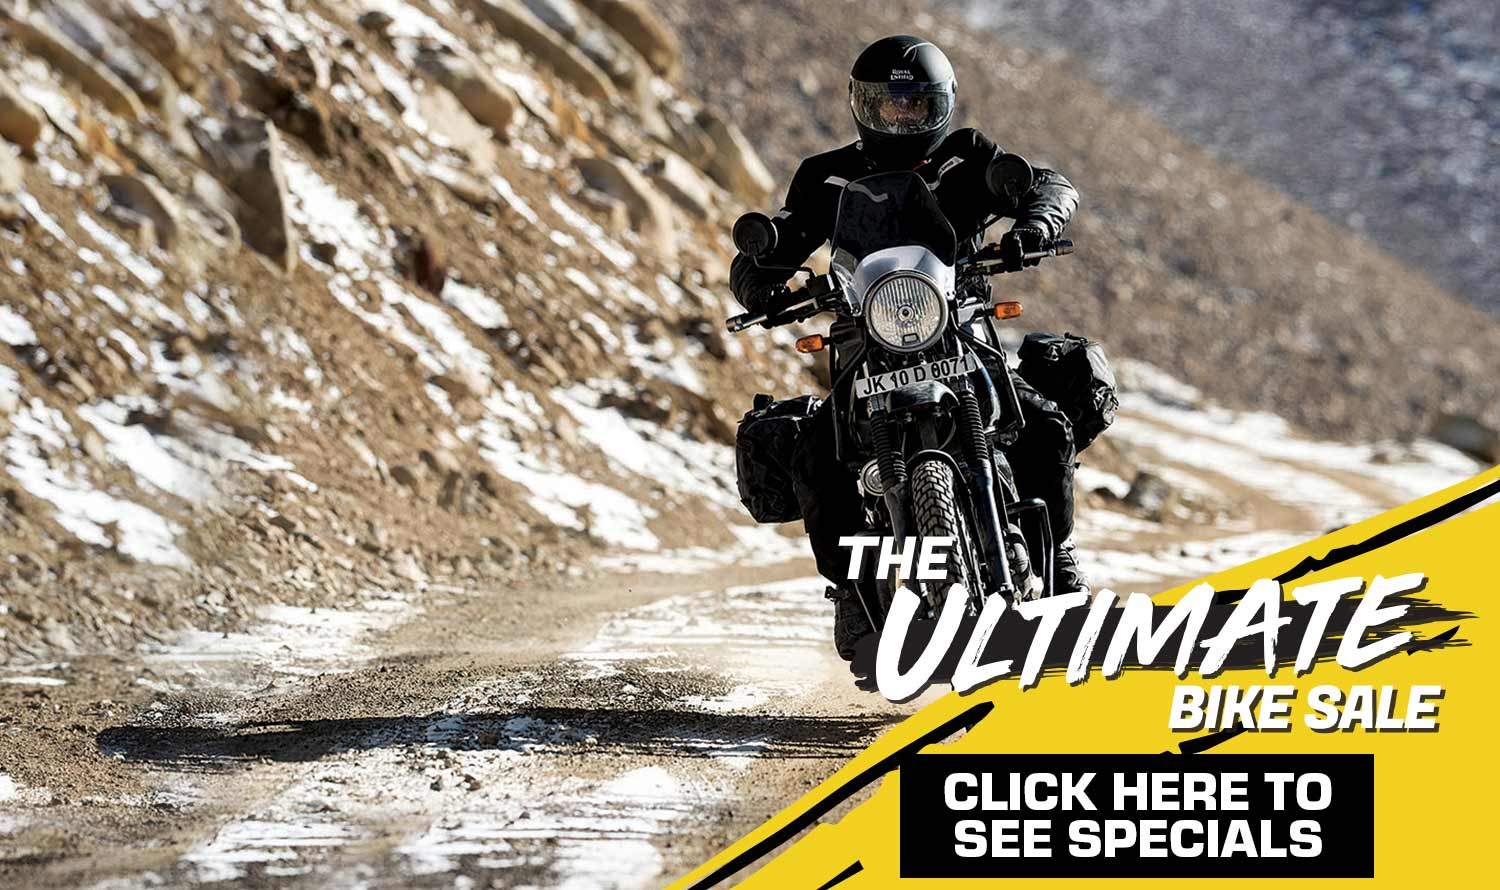 Ultimate-HPB-RoyalEnfield-Nov18-SM